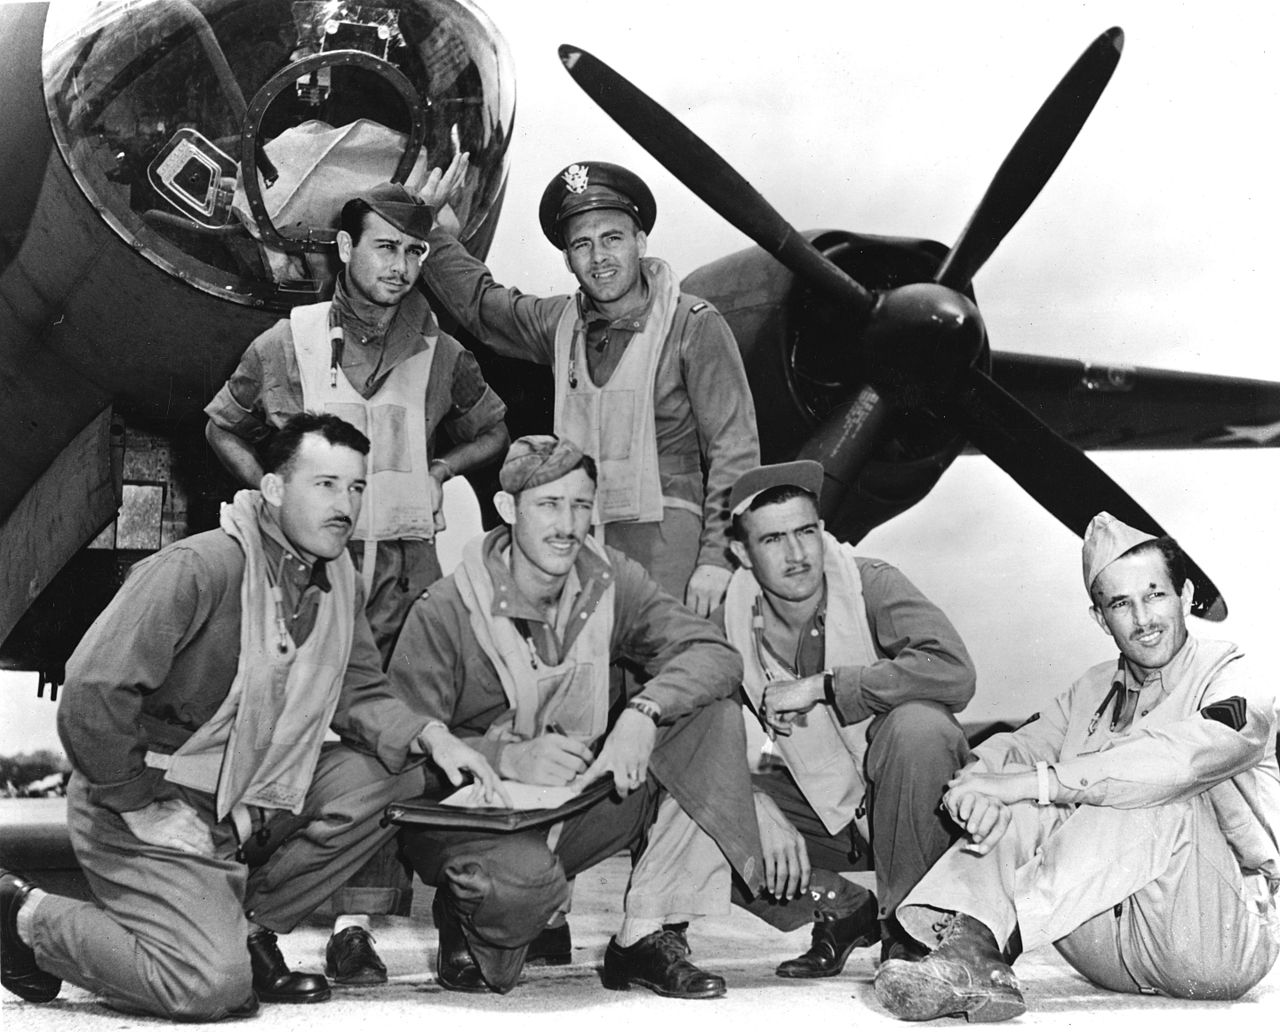 Crew_of_Lt._James_Muri_with_Martin_B-26_Marauder_at_Midway_in_June_1942.jpg